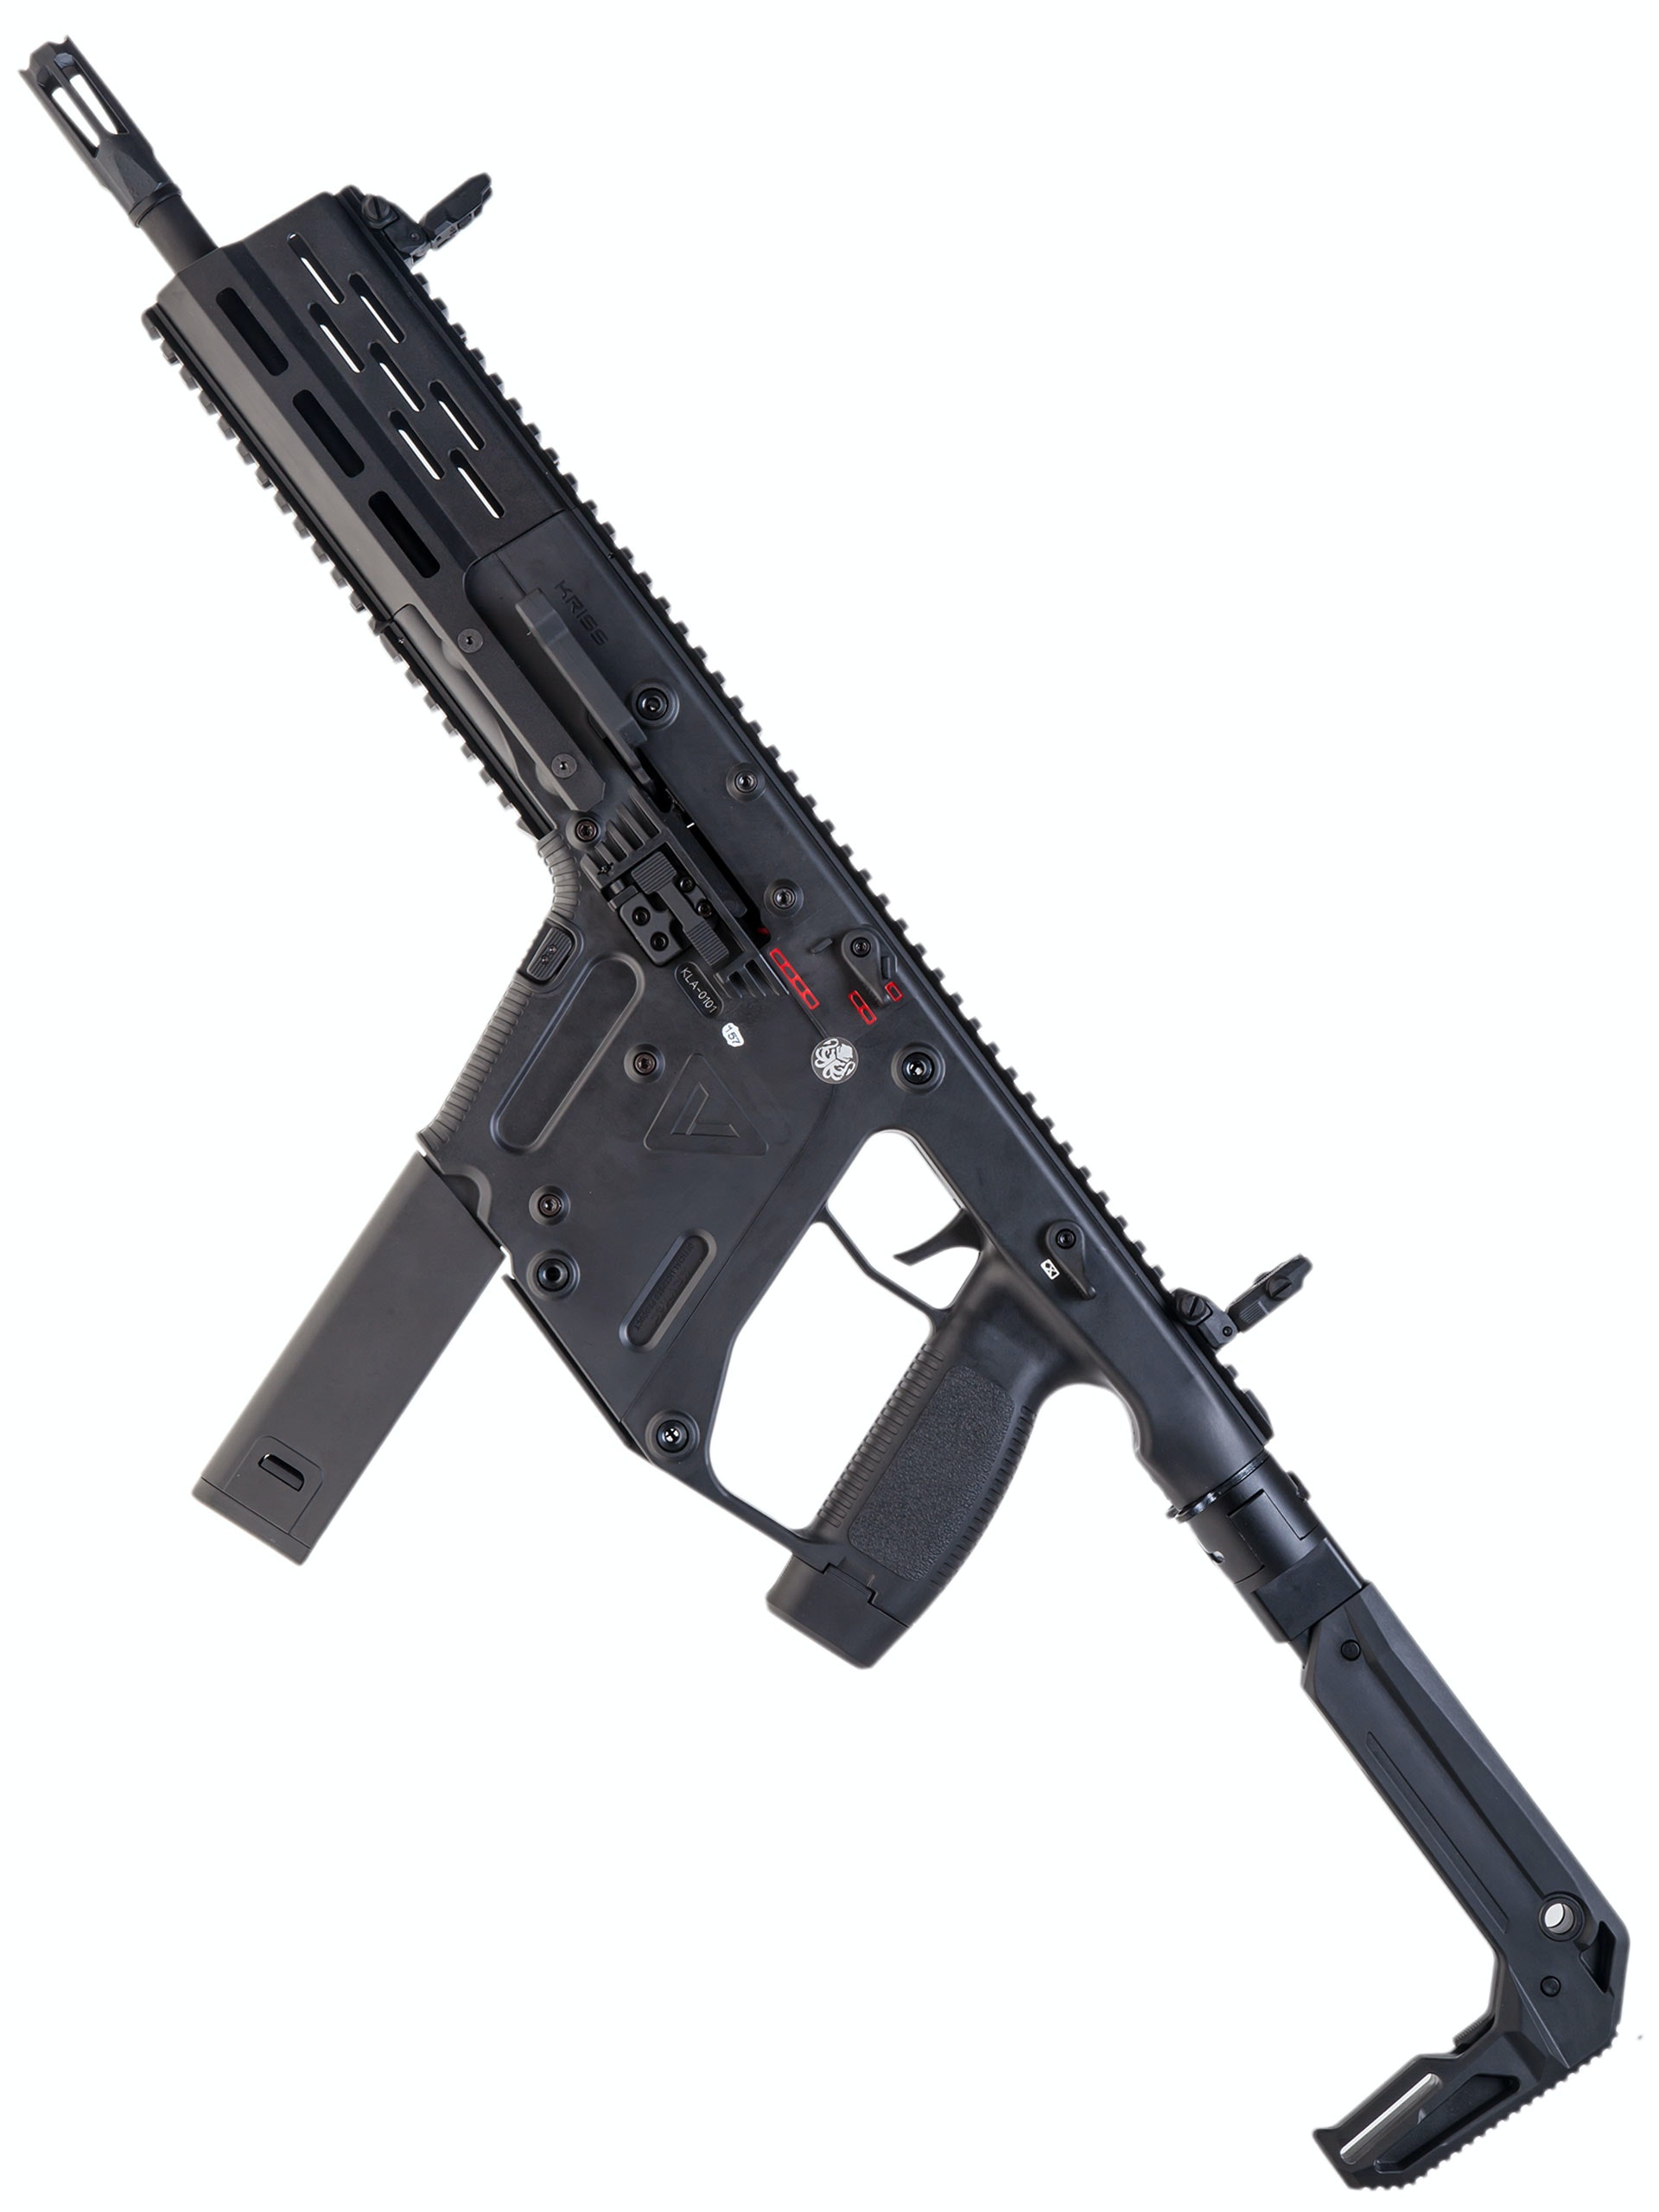 KRYTAC - KRISS Vector Limited Edition SMG